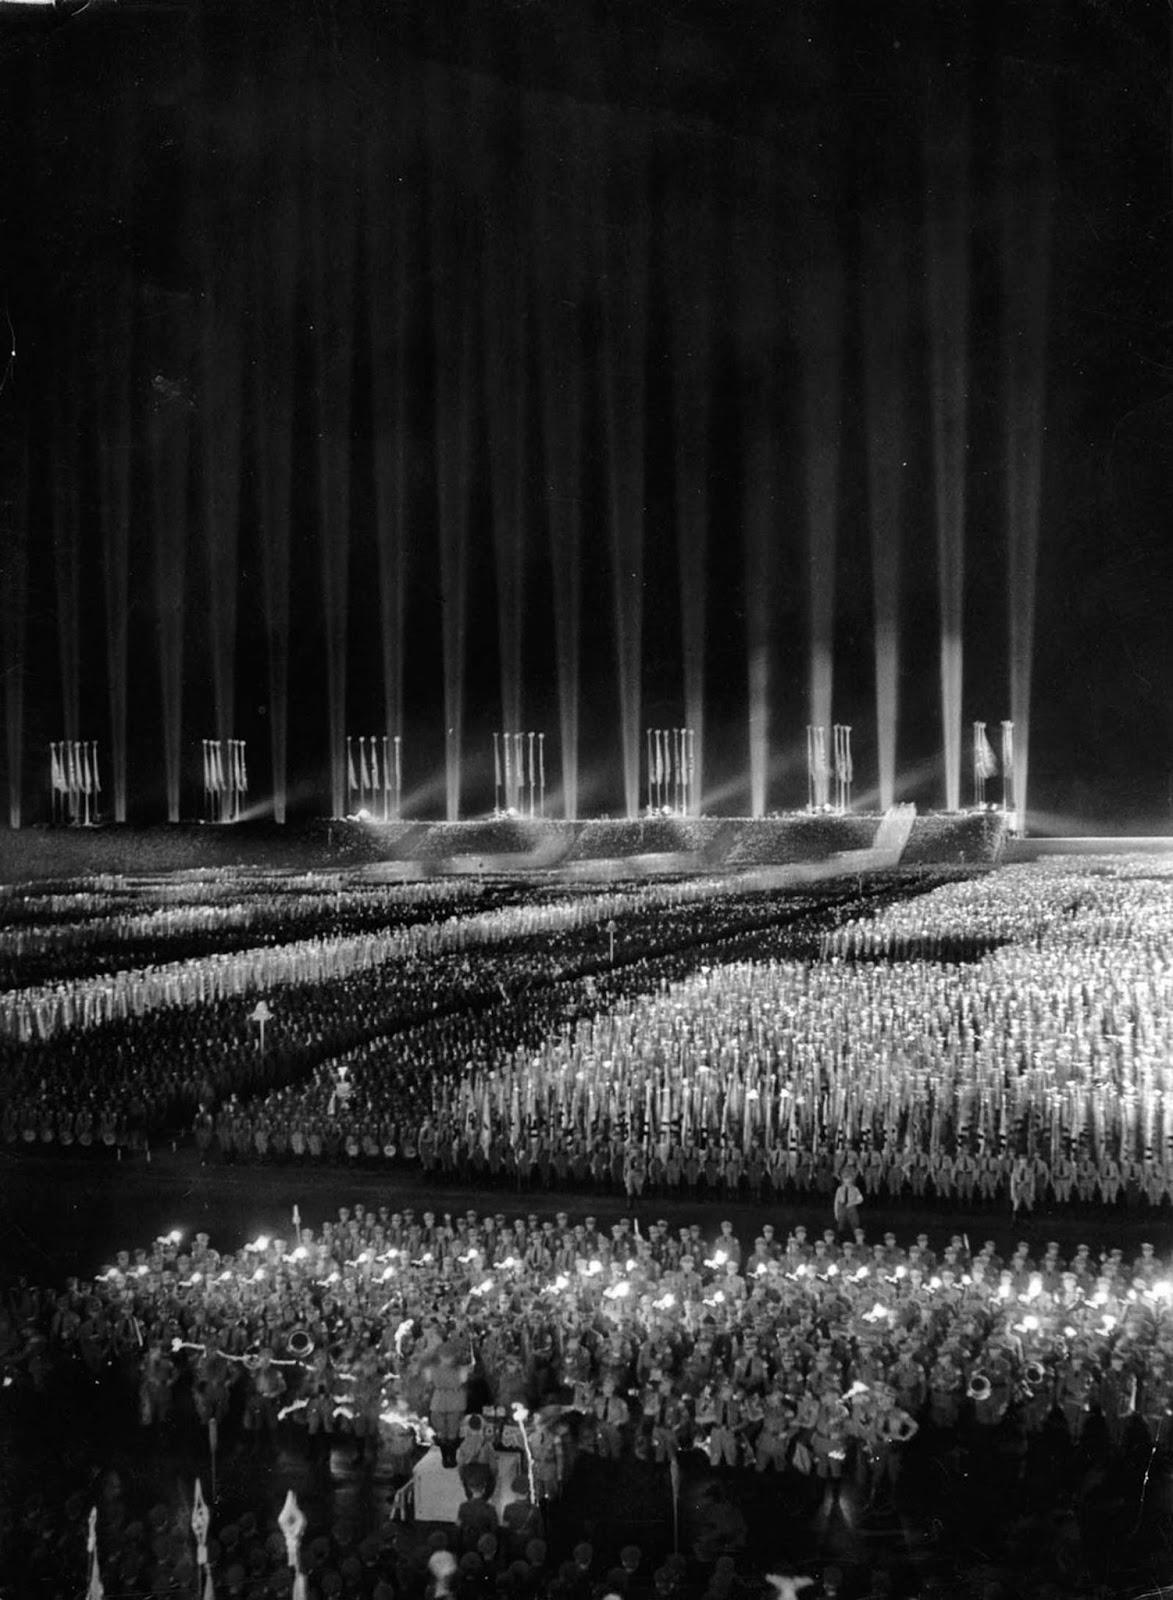 The cathedral of light was documented in the Nazi Propaganda film Festliches Nürnberg, released in 1937.